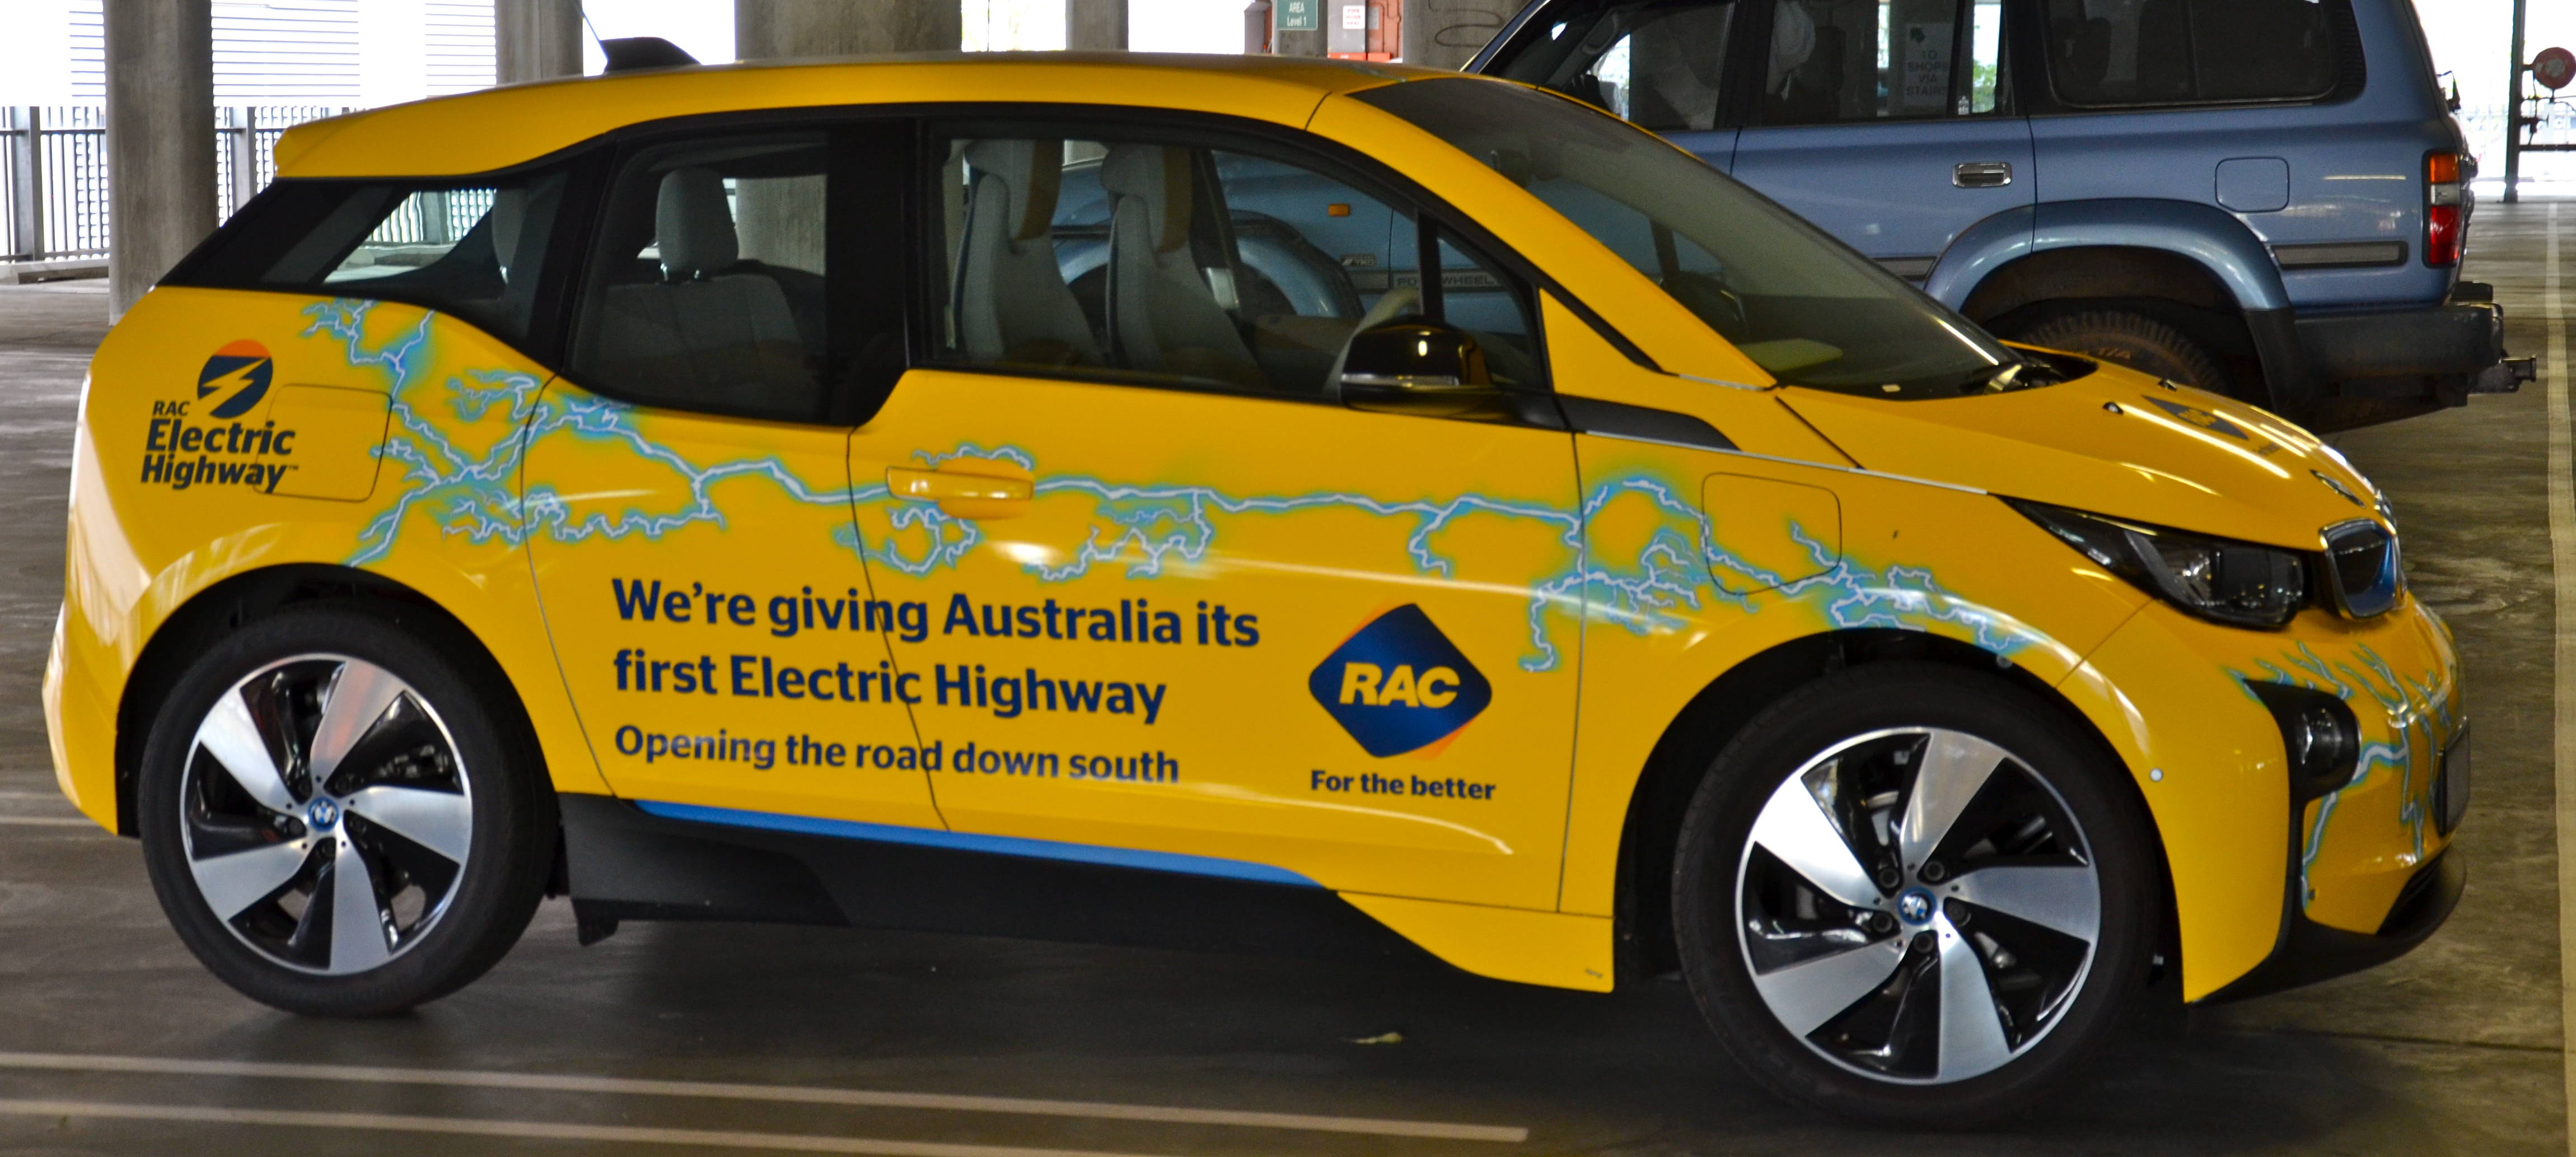 Plug In Electric Vehicles Australia Wikipedia The Origins Of Australianplug And Other Electrical Trivia Driver Assistance Operated By Royal Automobile Club Western Left Bmw I3 National Roads Motorists Association